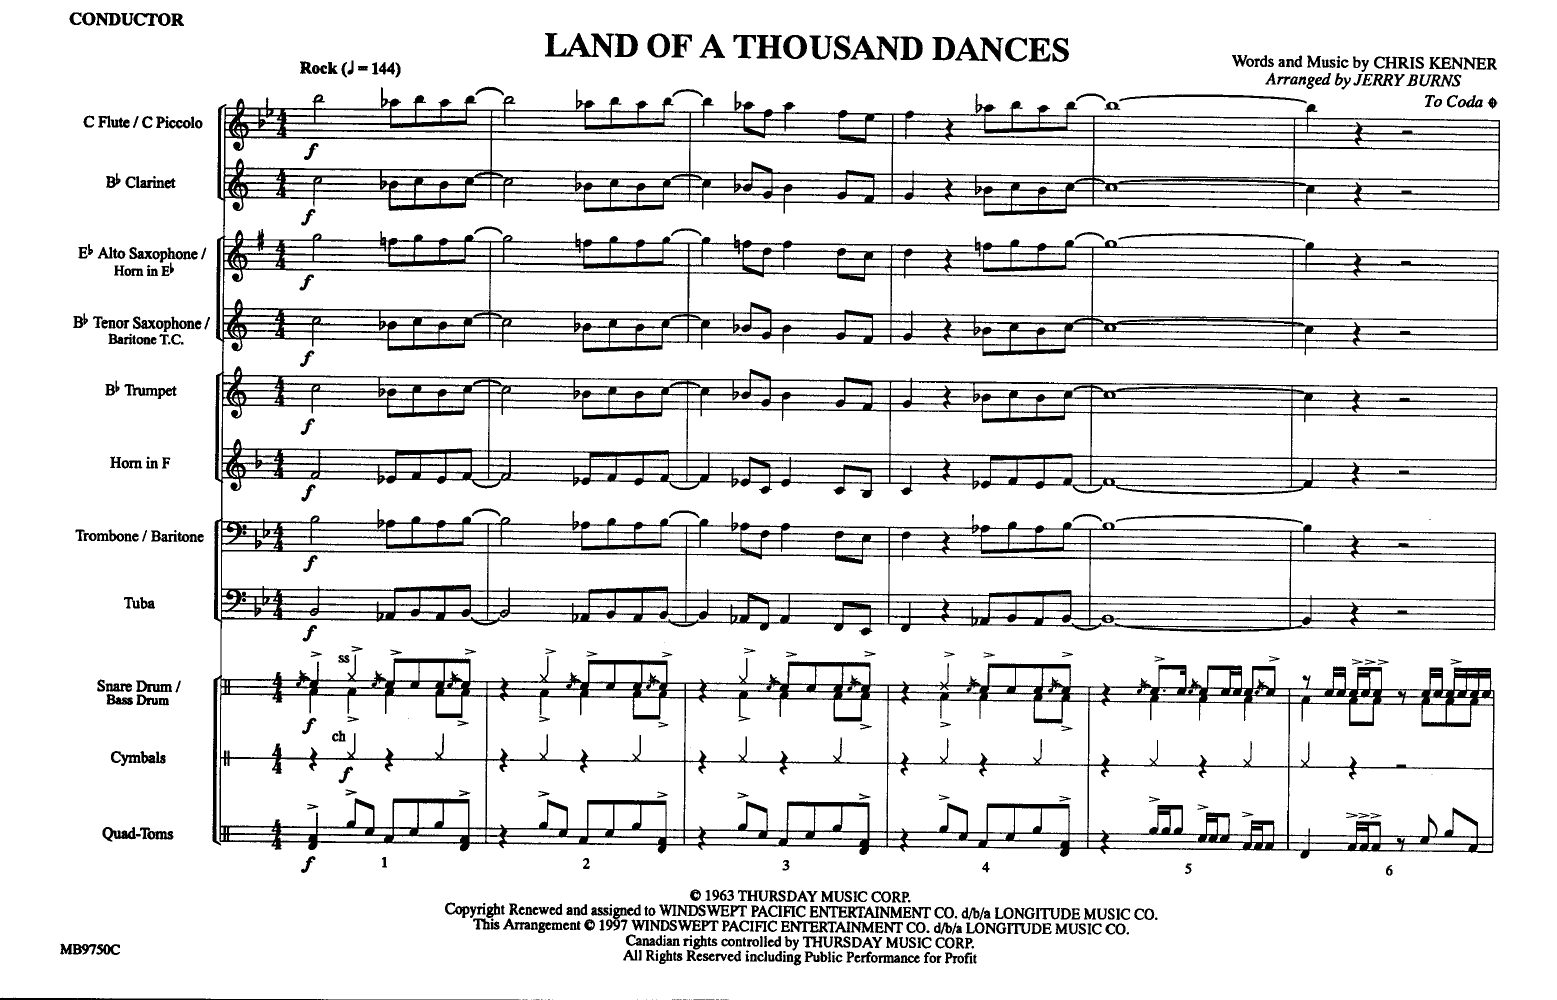 Land of a Thousand Dances arr  Jerry Burns| J W  Pepper